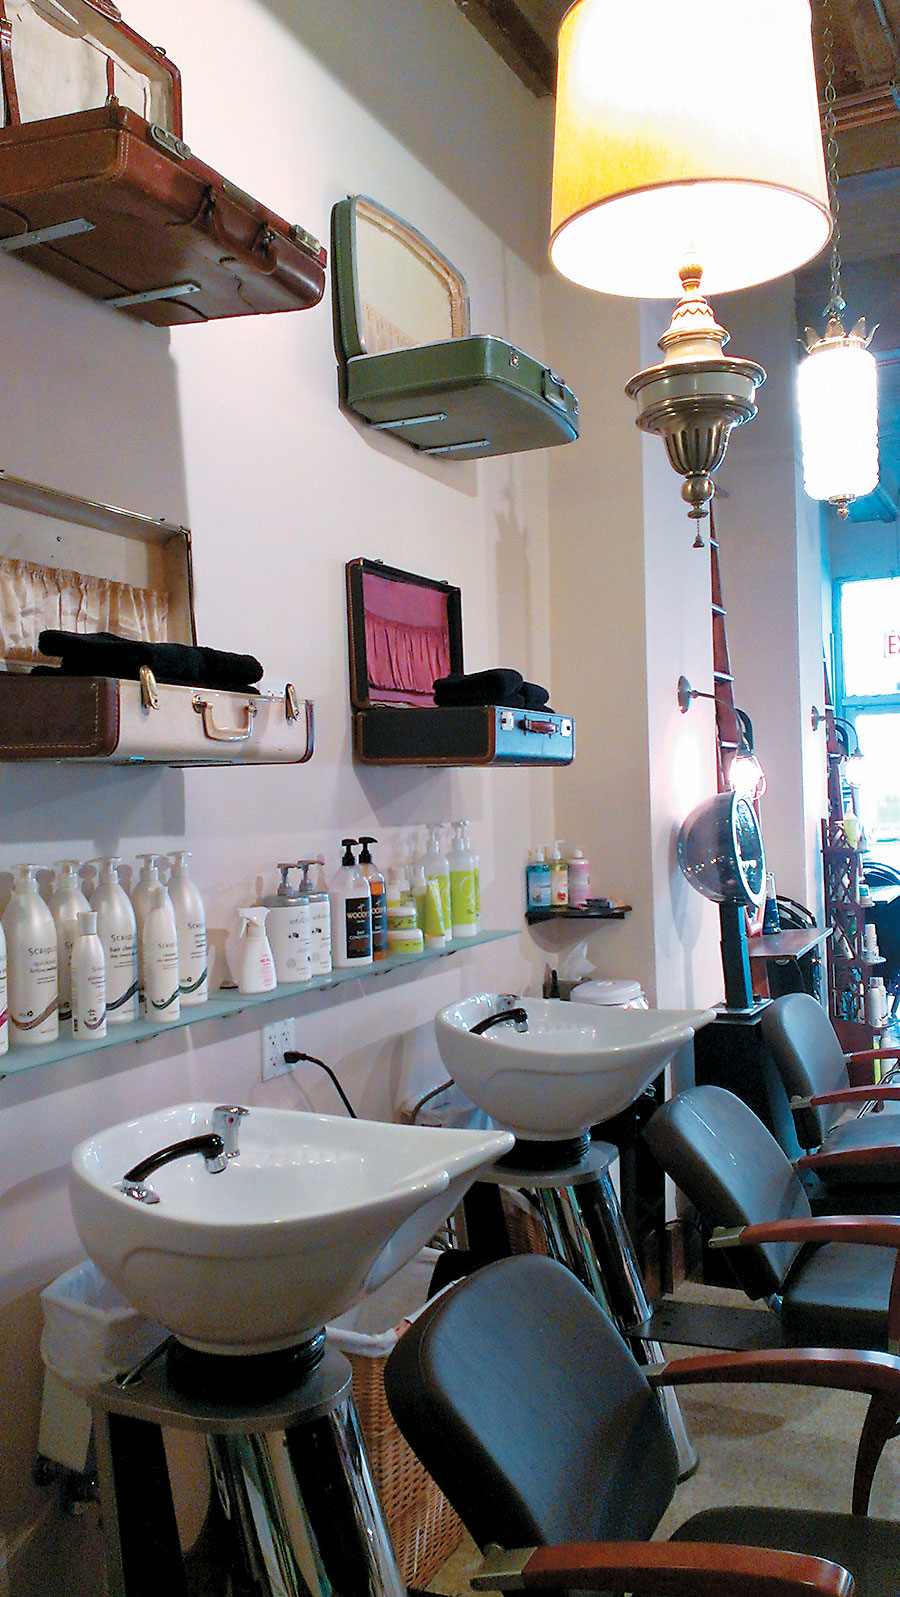 Vintage suitcases affixed to the wall above each shampoo bowl hold towels.